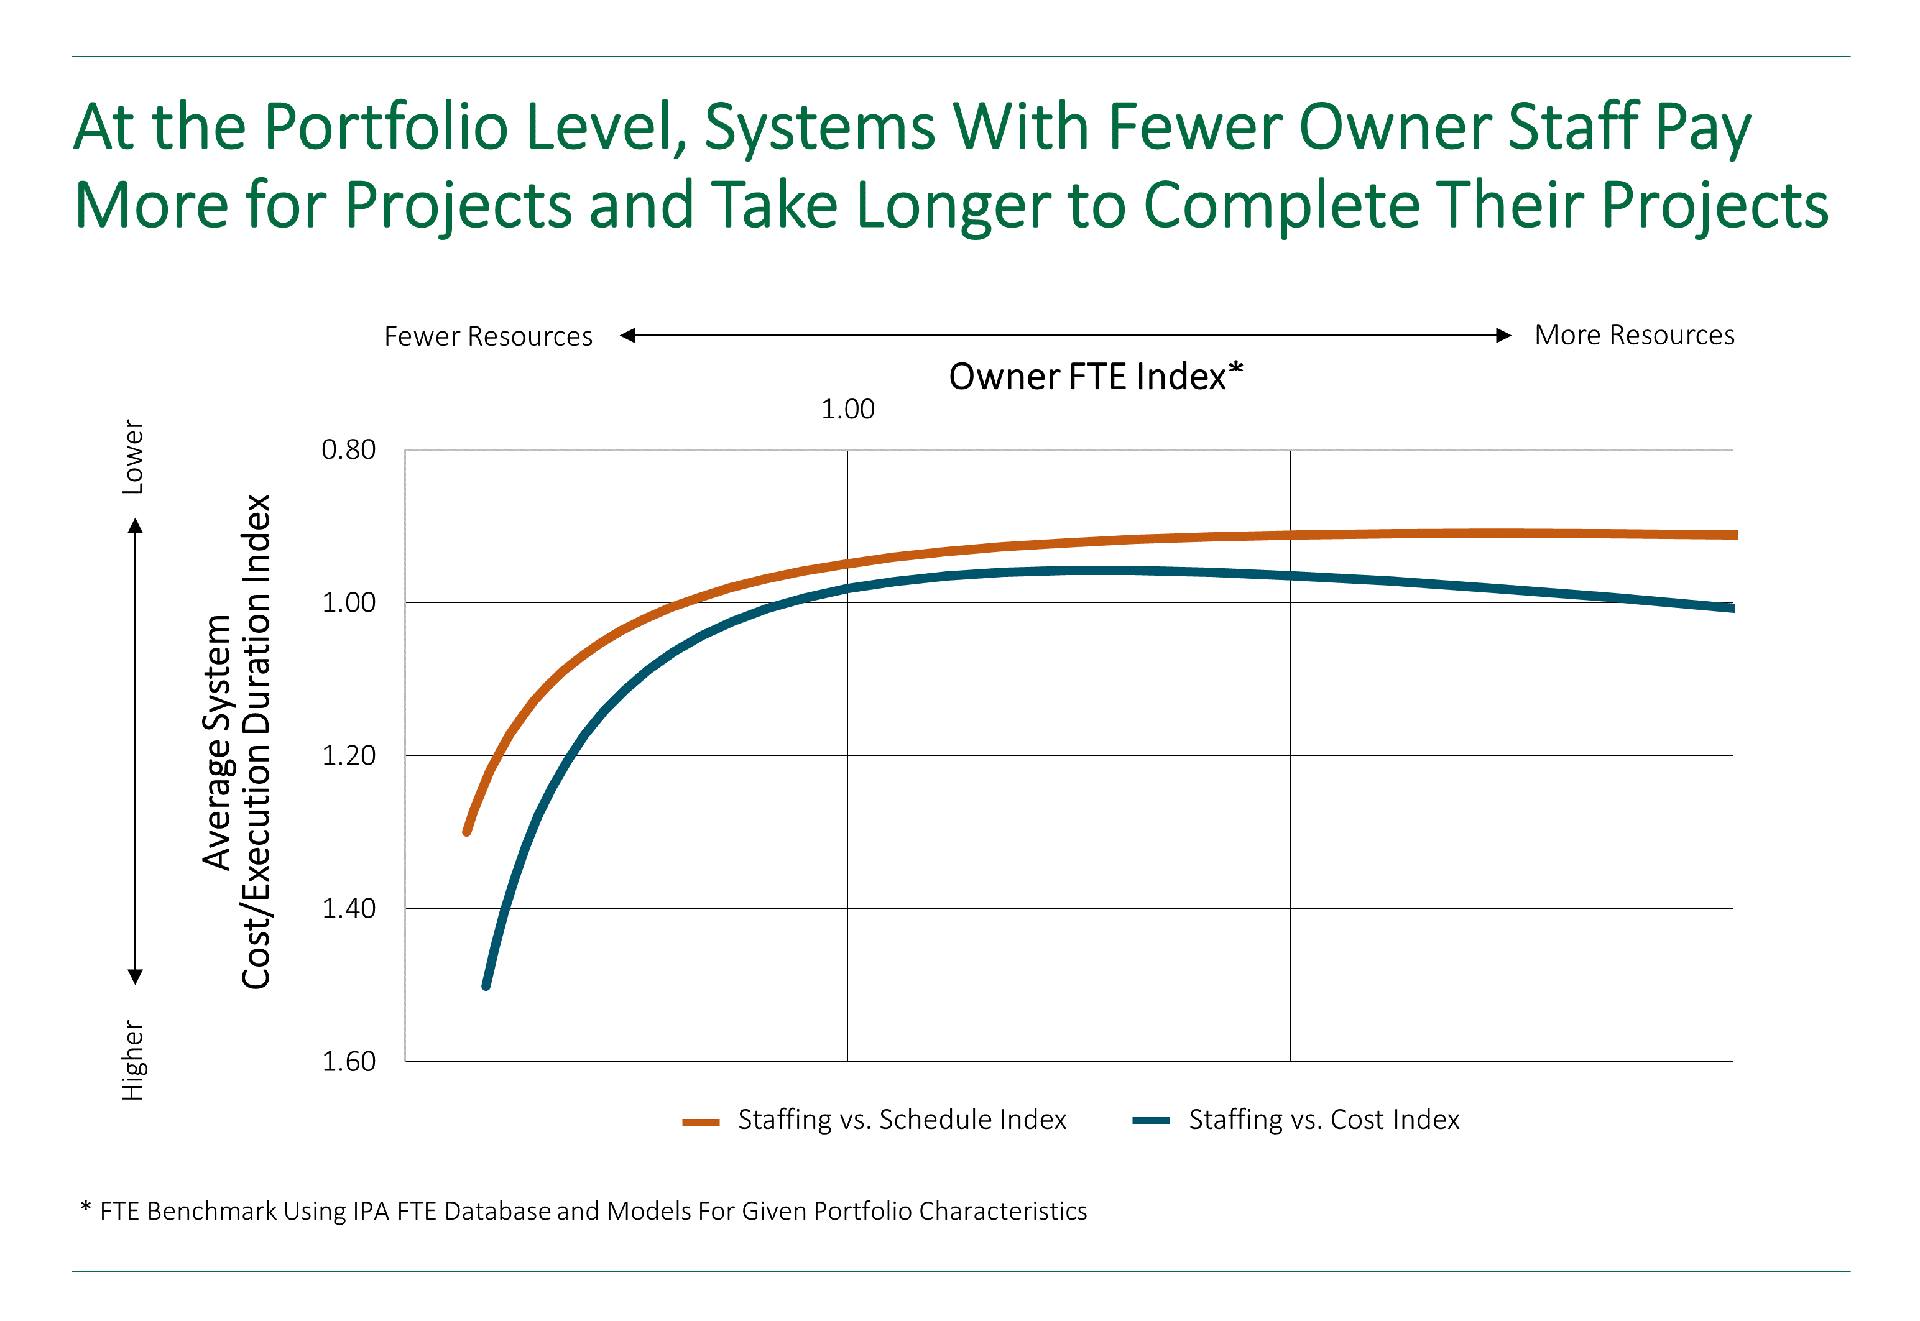 Graph showing how at the portfolio level, systems with fewer owner staff pay more for projects and take longer to complete their projects.